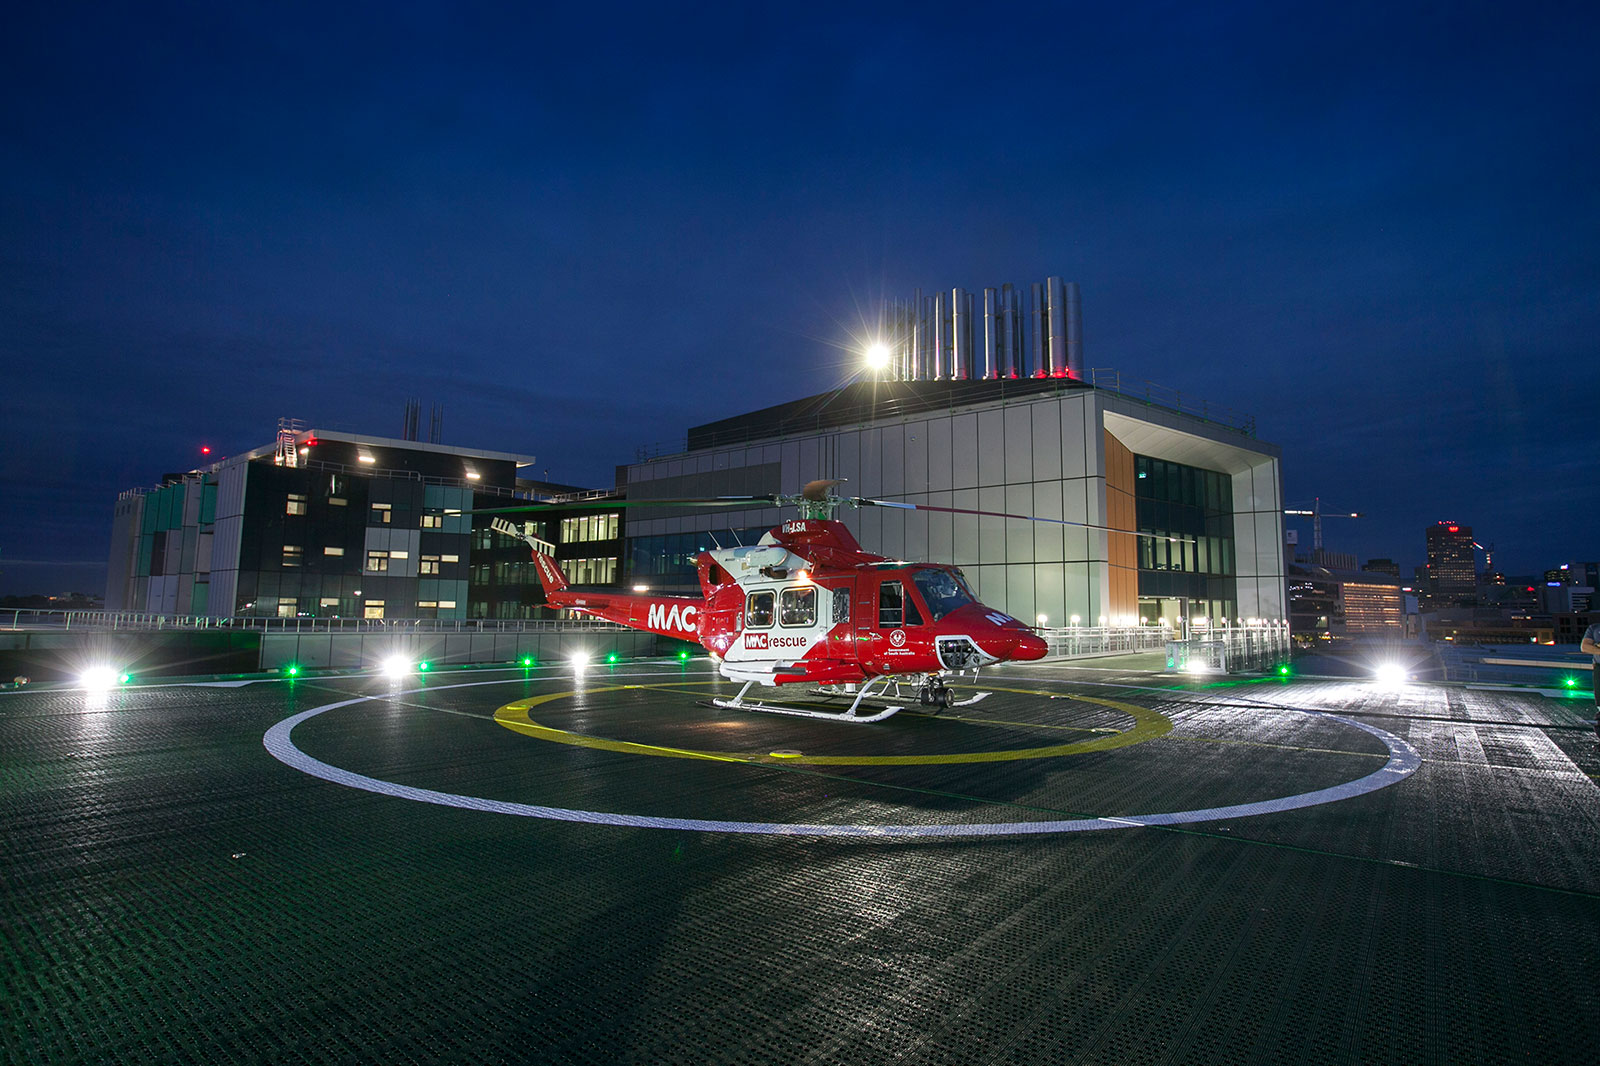 27mx54m-helipad-for-New-Royal-Adelaide-Hospital